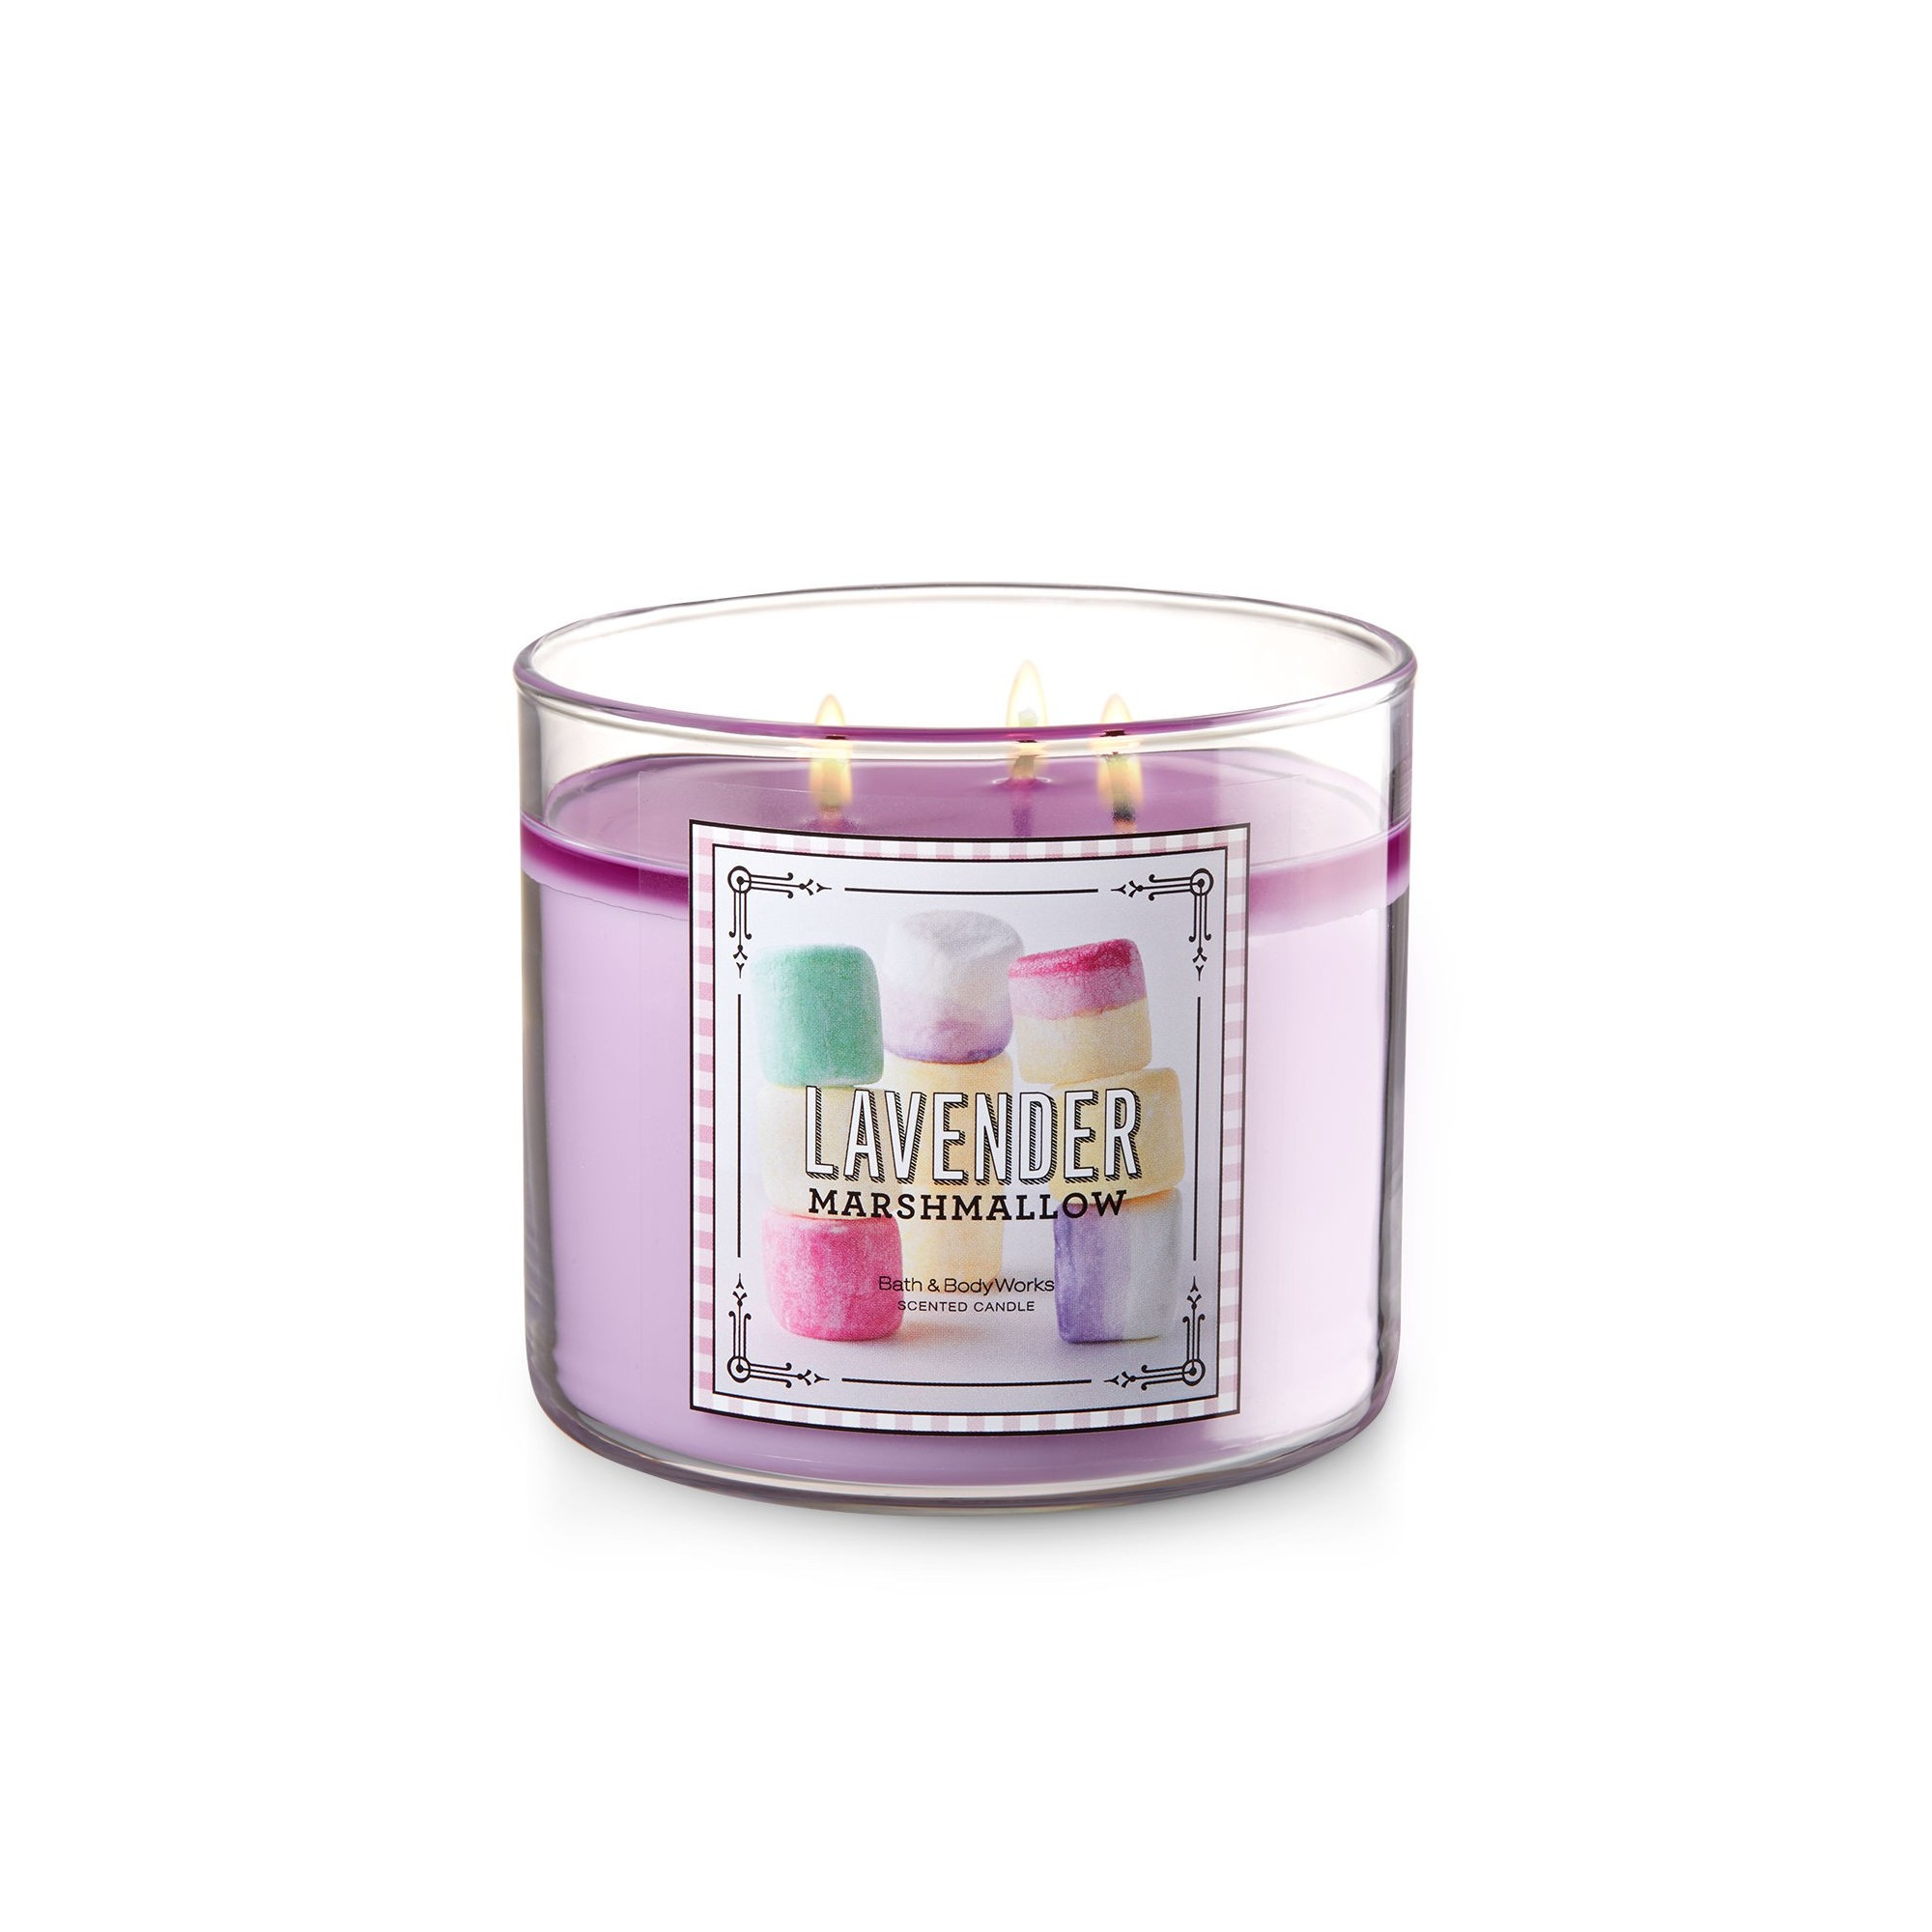 Bath & Body Works Lavender Marshmallow 3 Wick Scented Candle